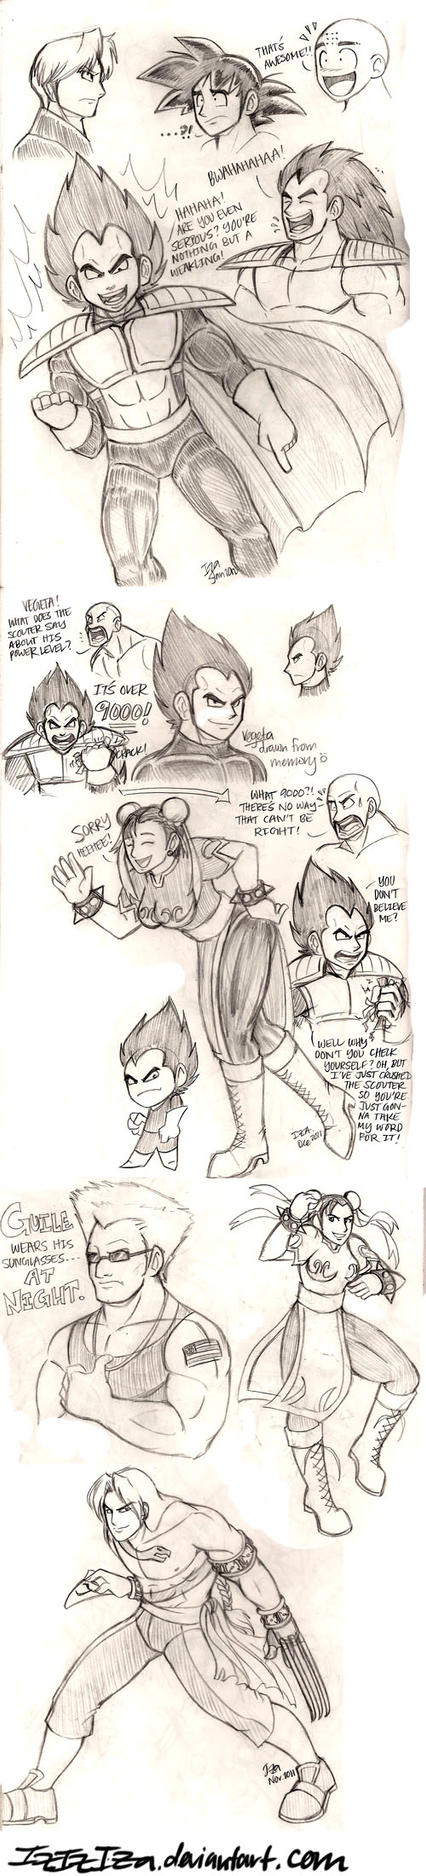 DBZ and Street Fighter Sketchderp by IzIzIza